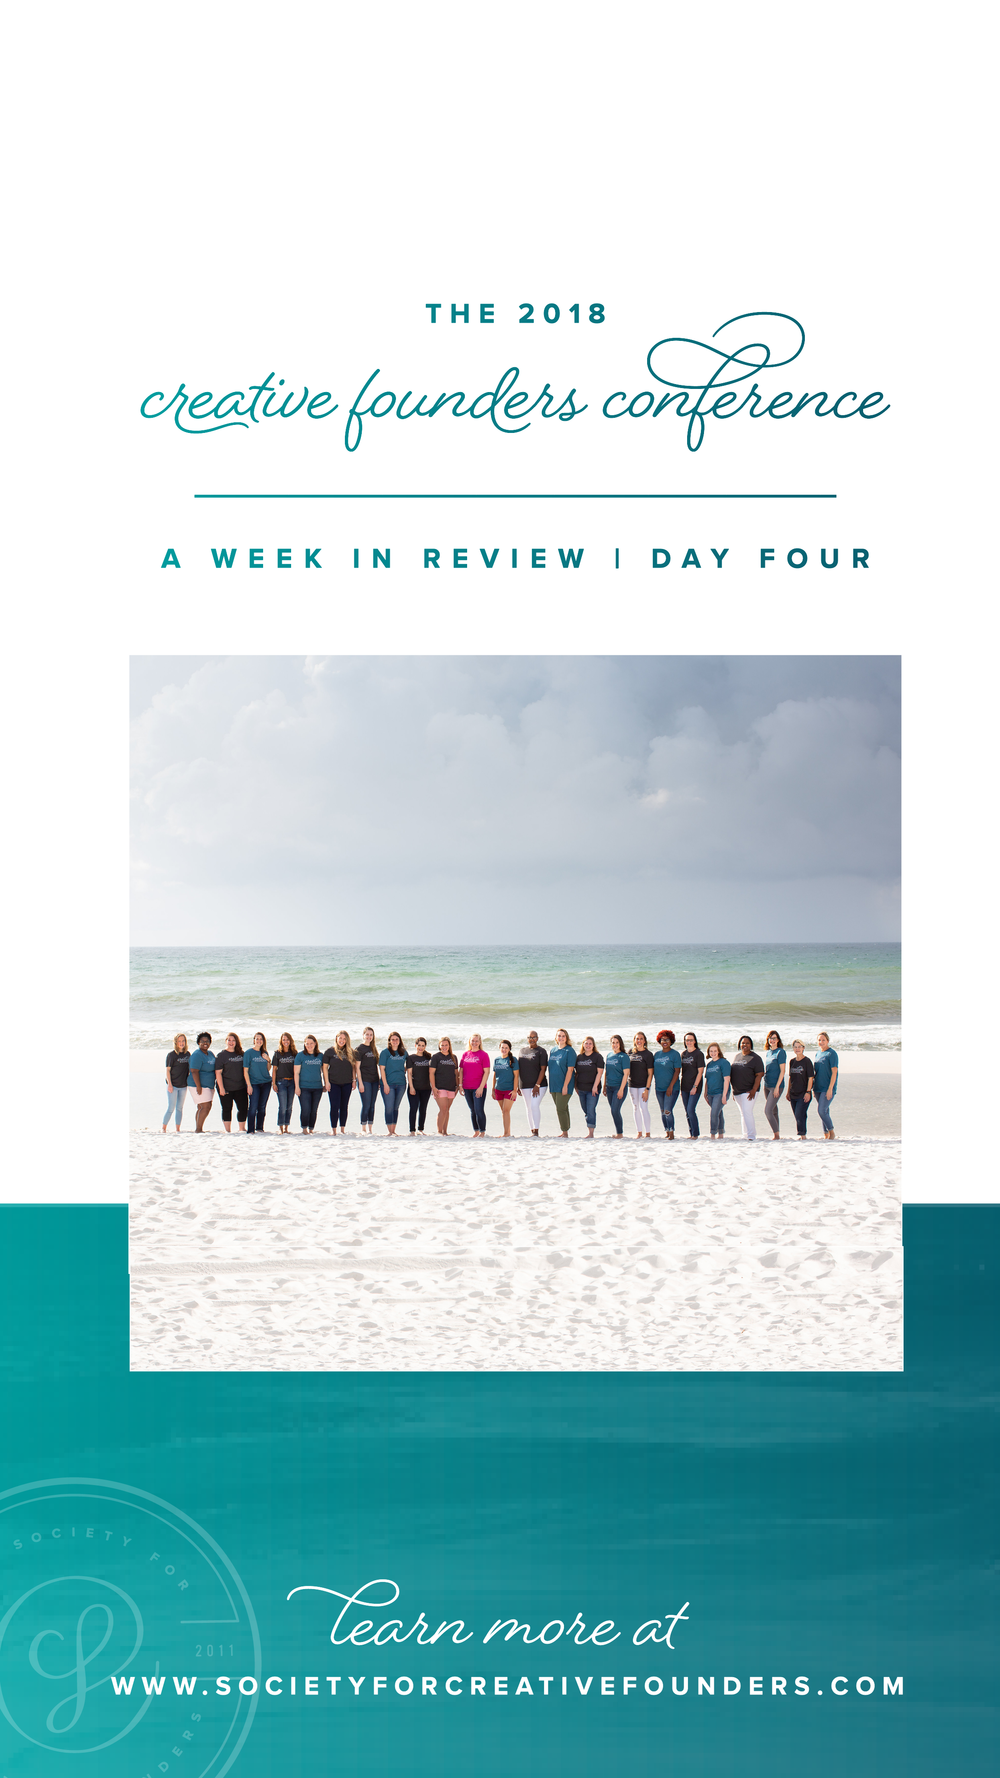 Society for Creative Founders Conference - Day 4